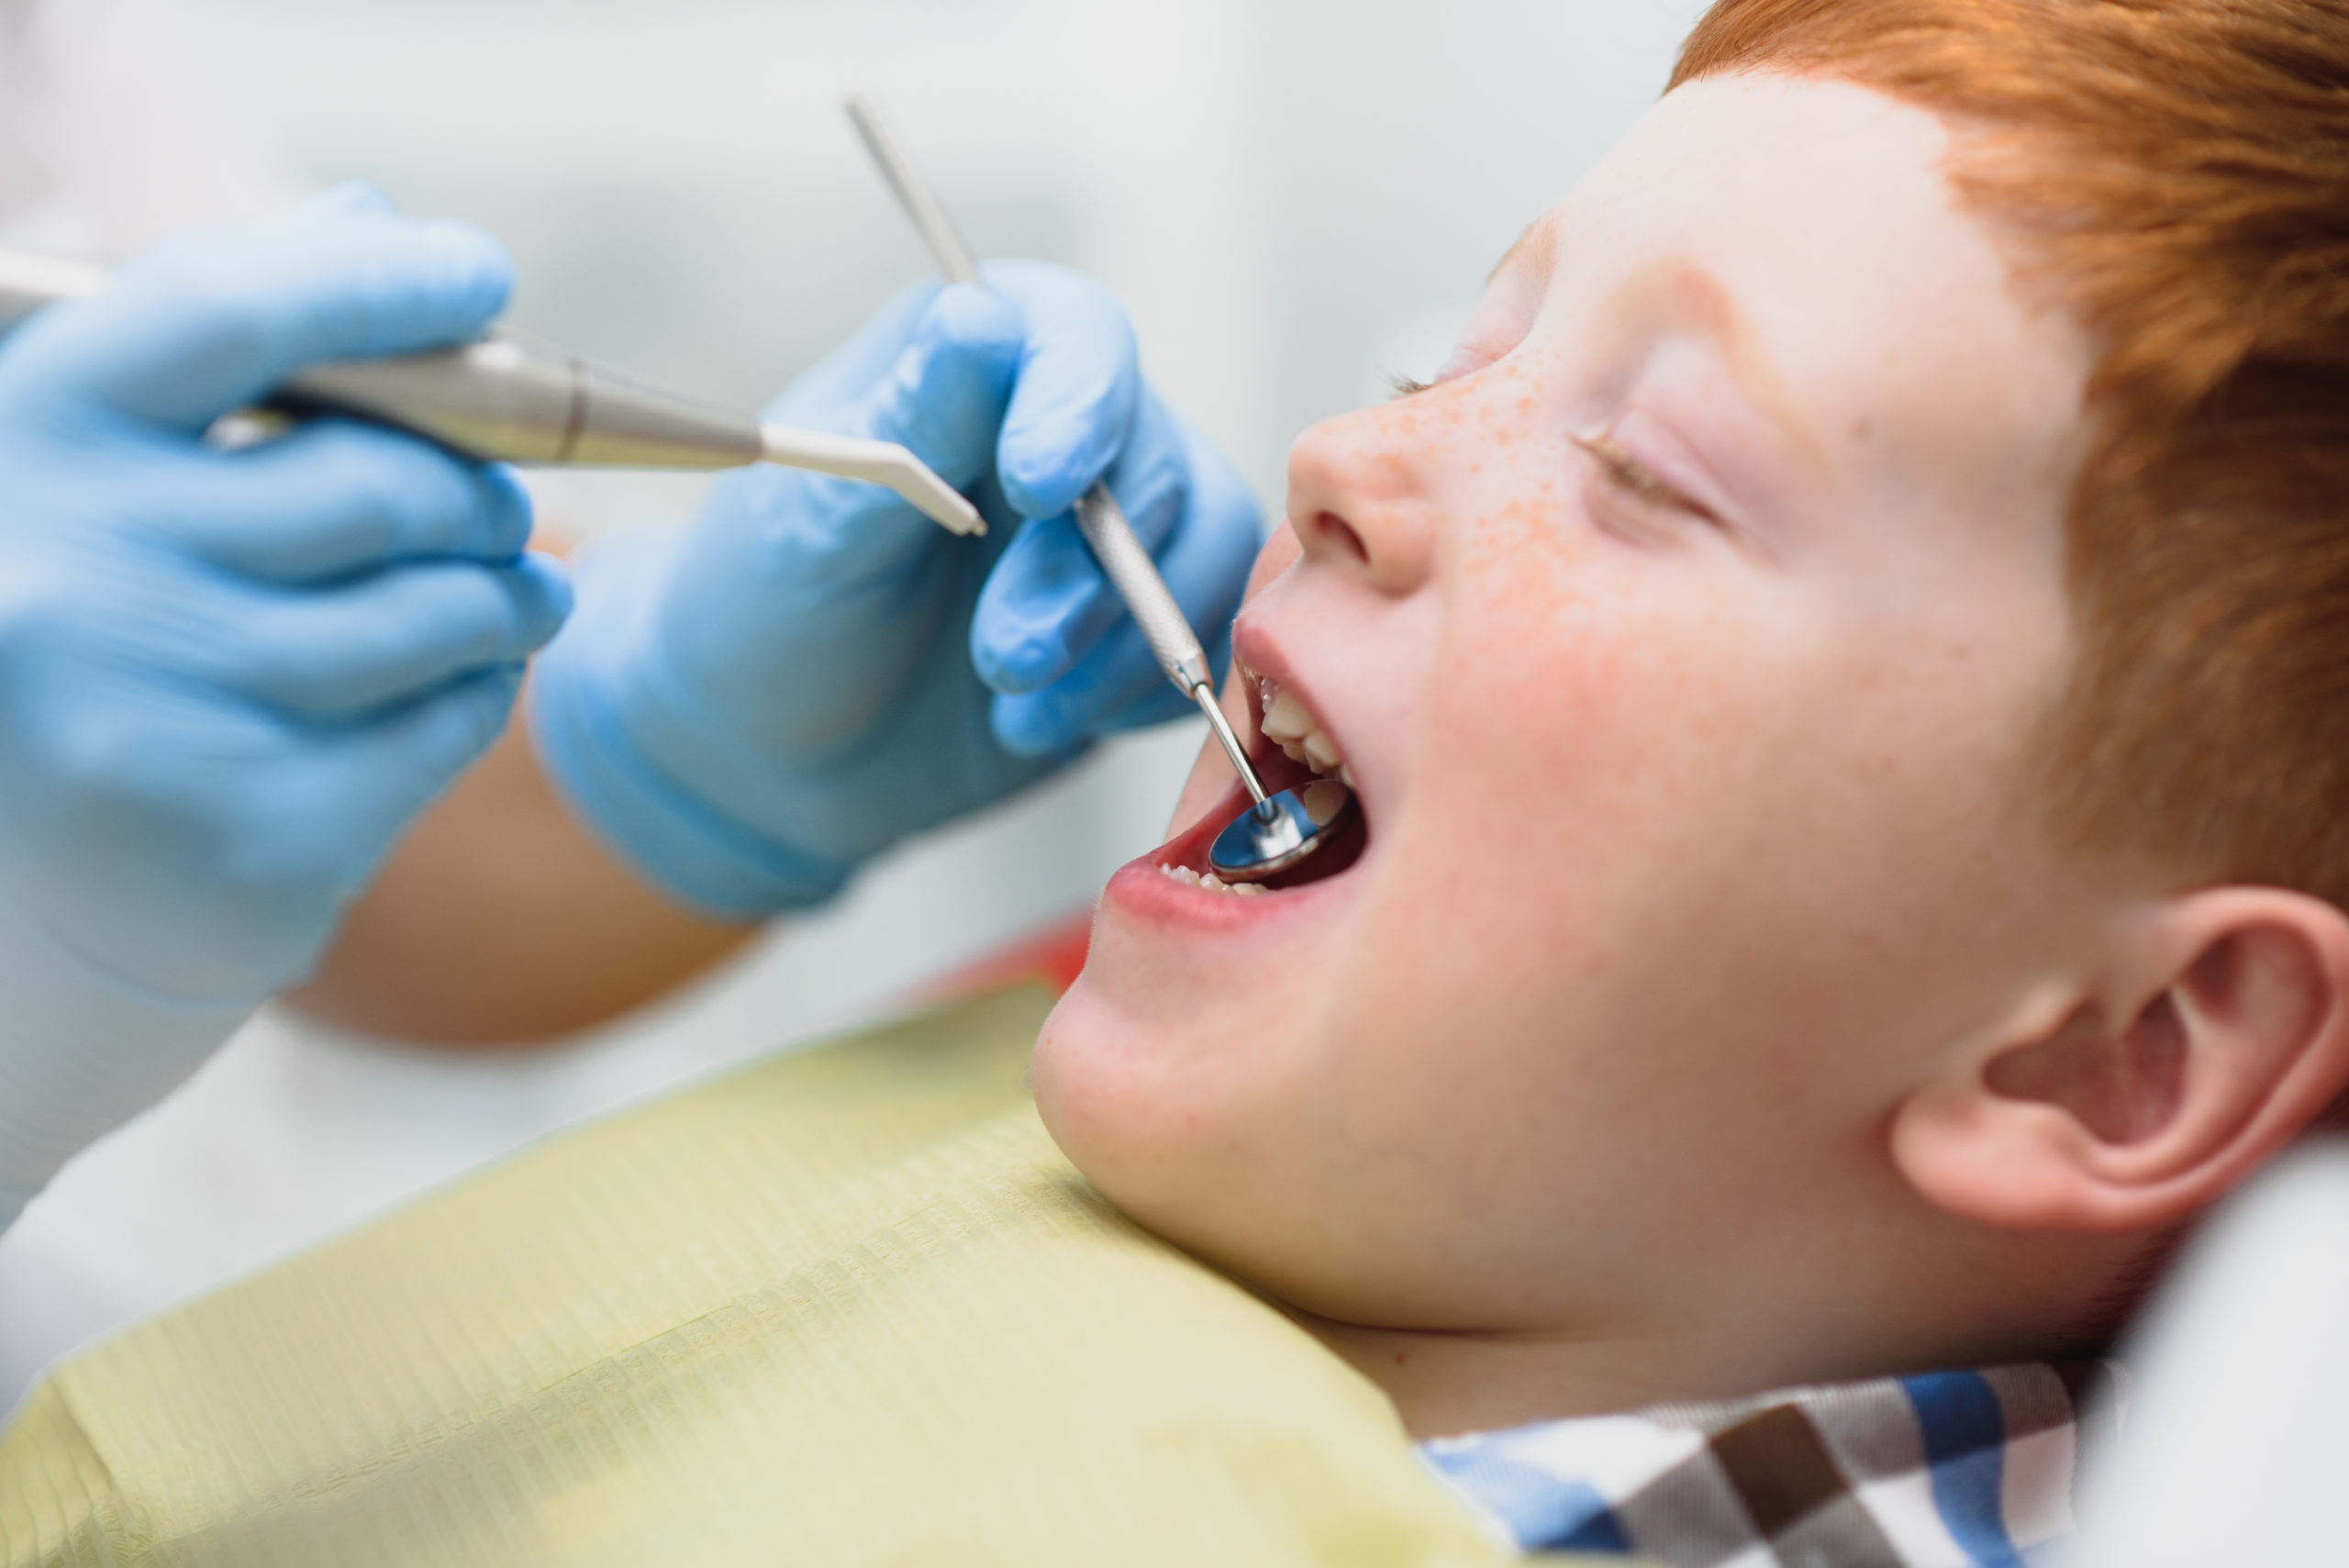 Boy satisfied with the service in the dental office.